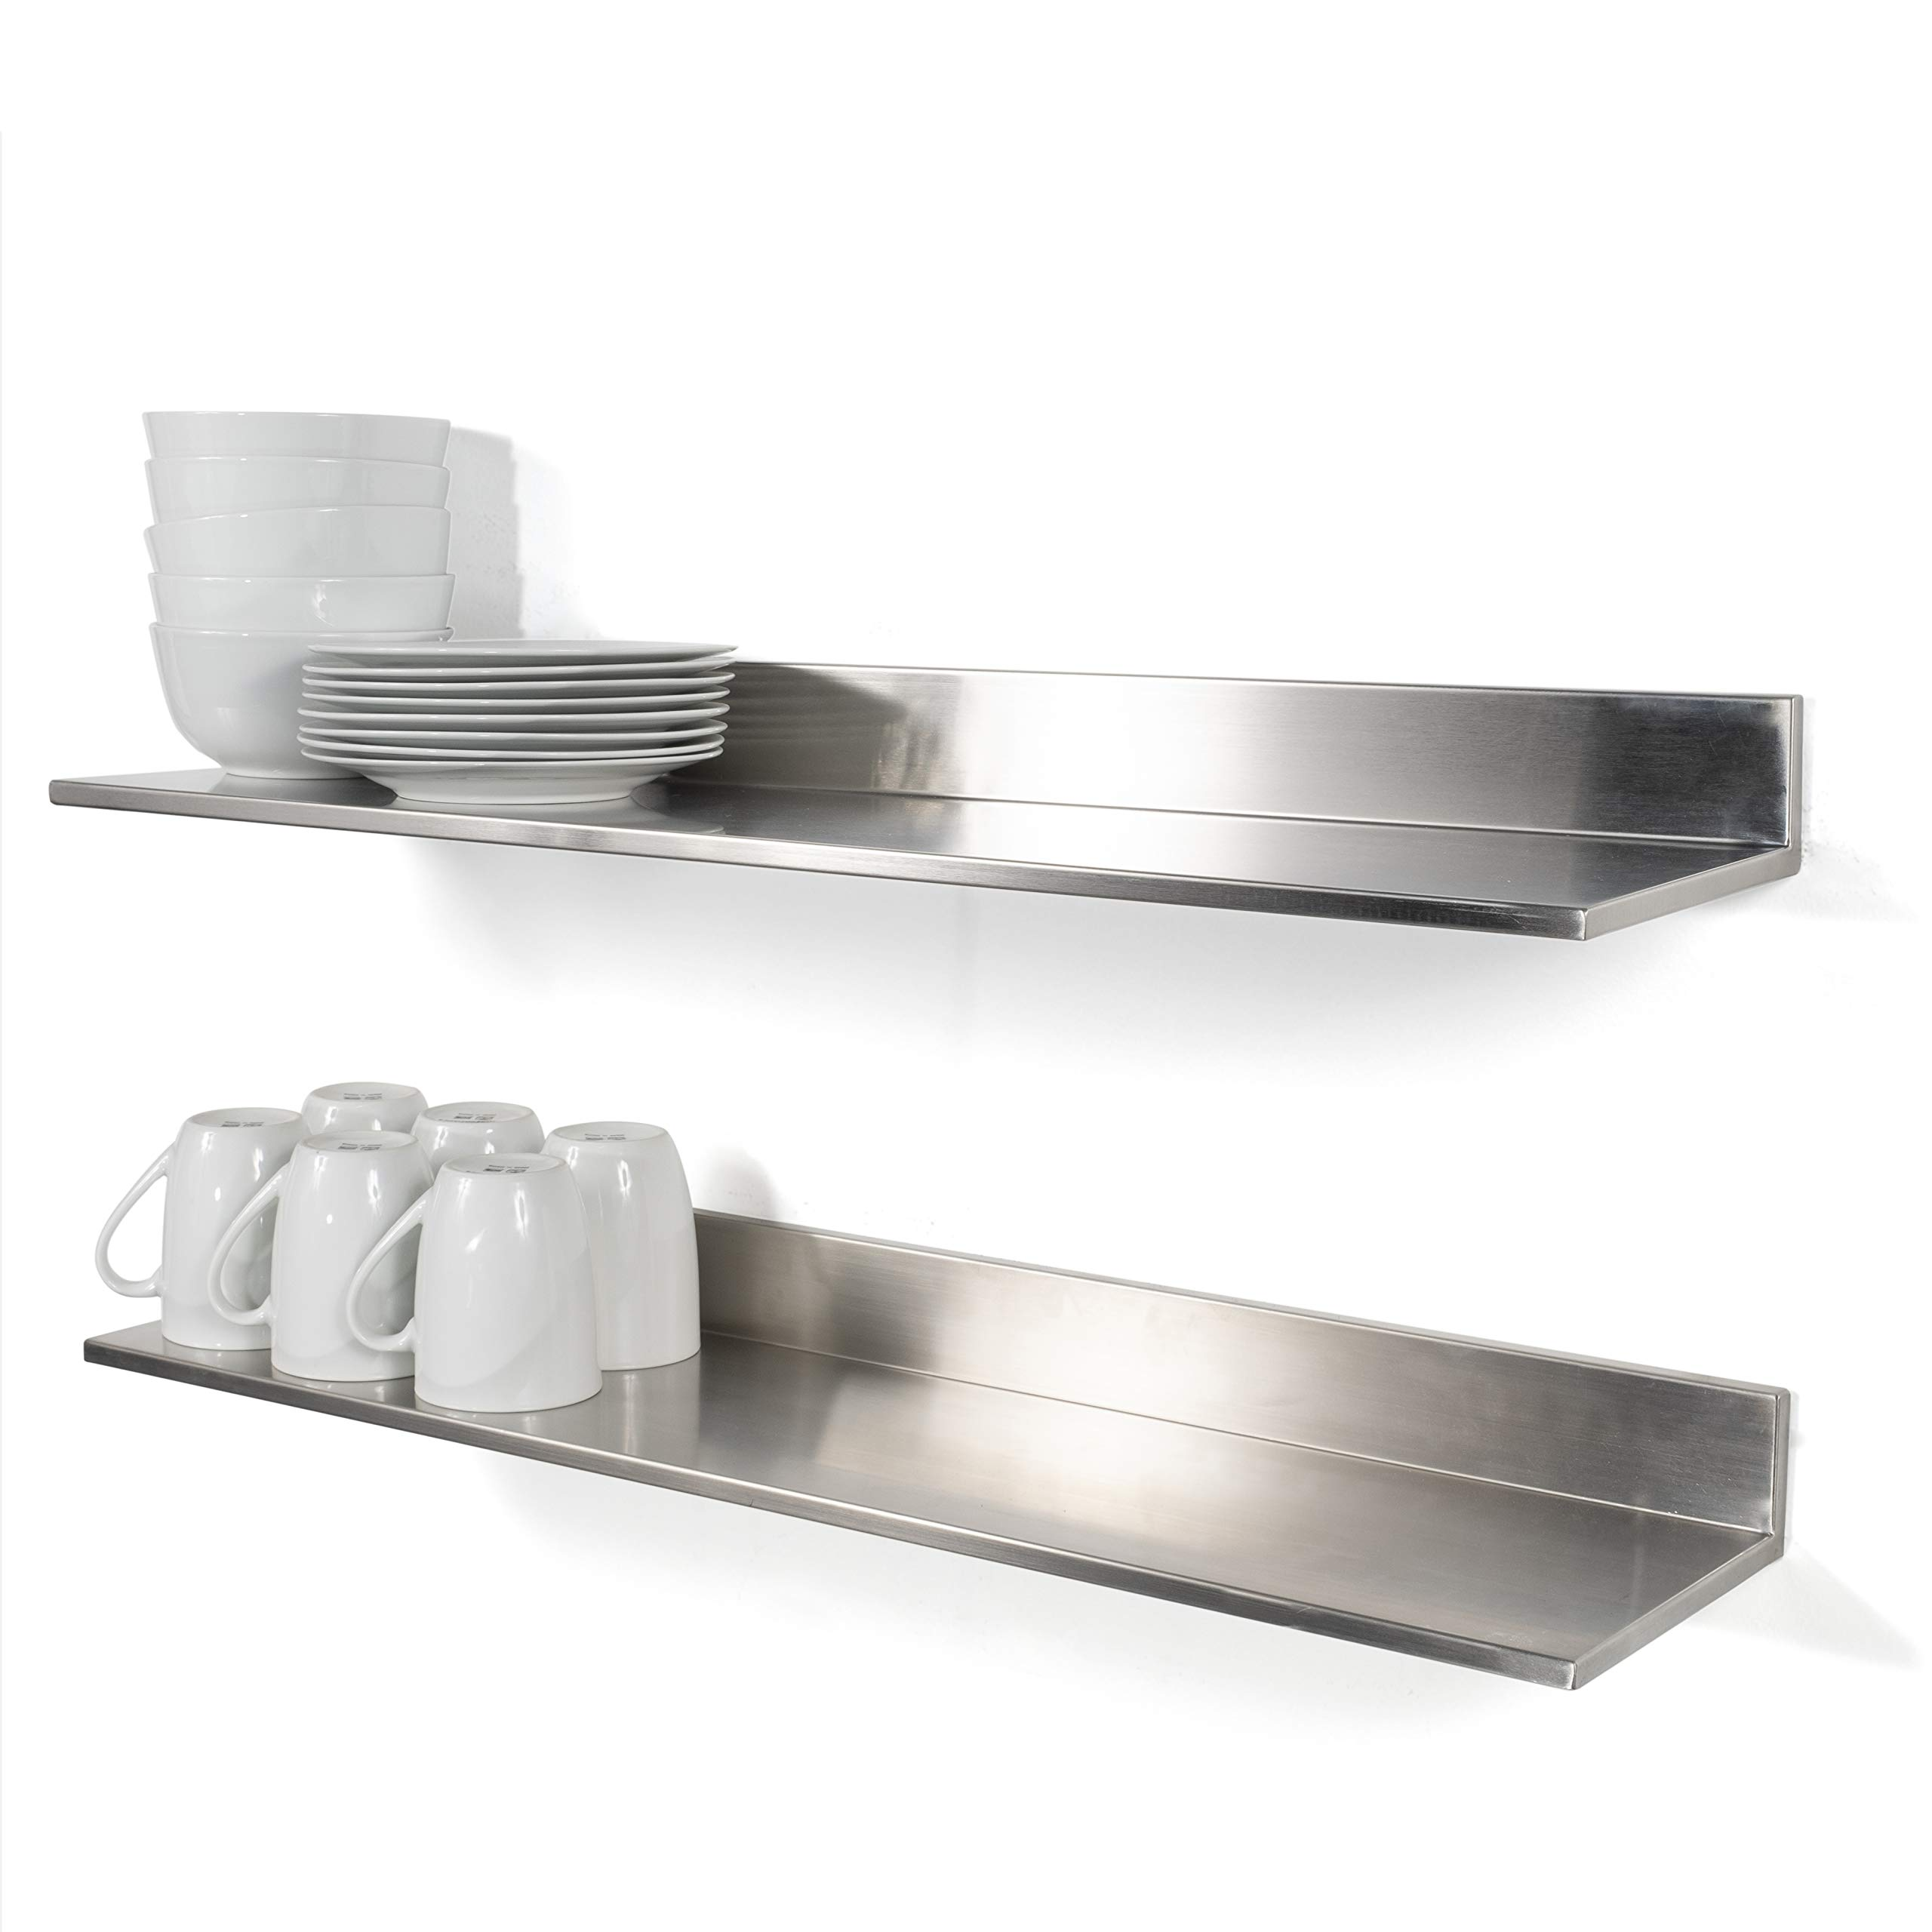 Stainless Steel Wall Mount Commercial and Home Use Premium Quality 30.50 Inches Kitchen Floating Shelves Set of 2 Silver by Fasthomegoods